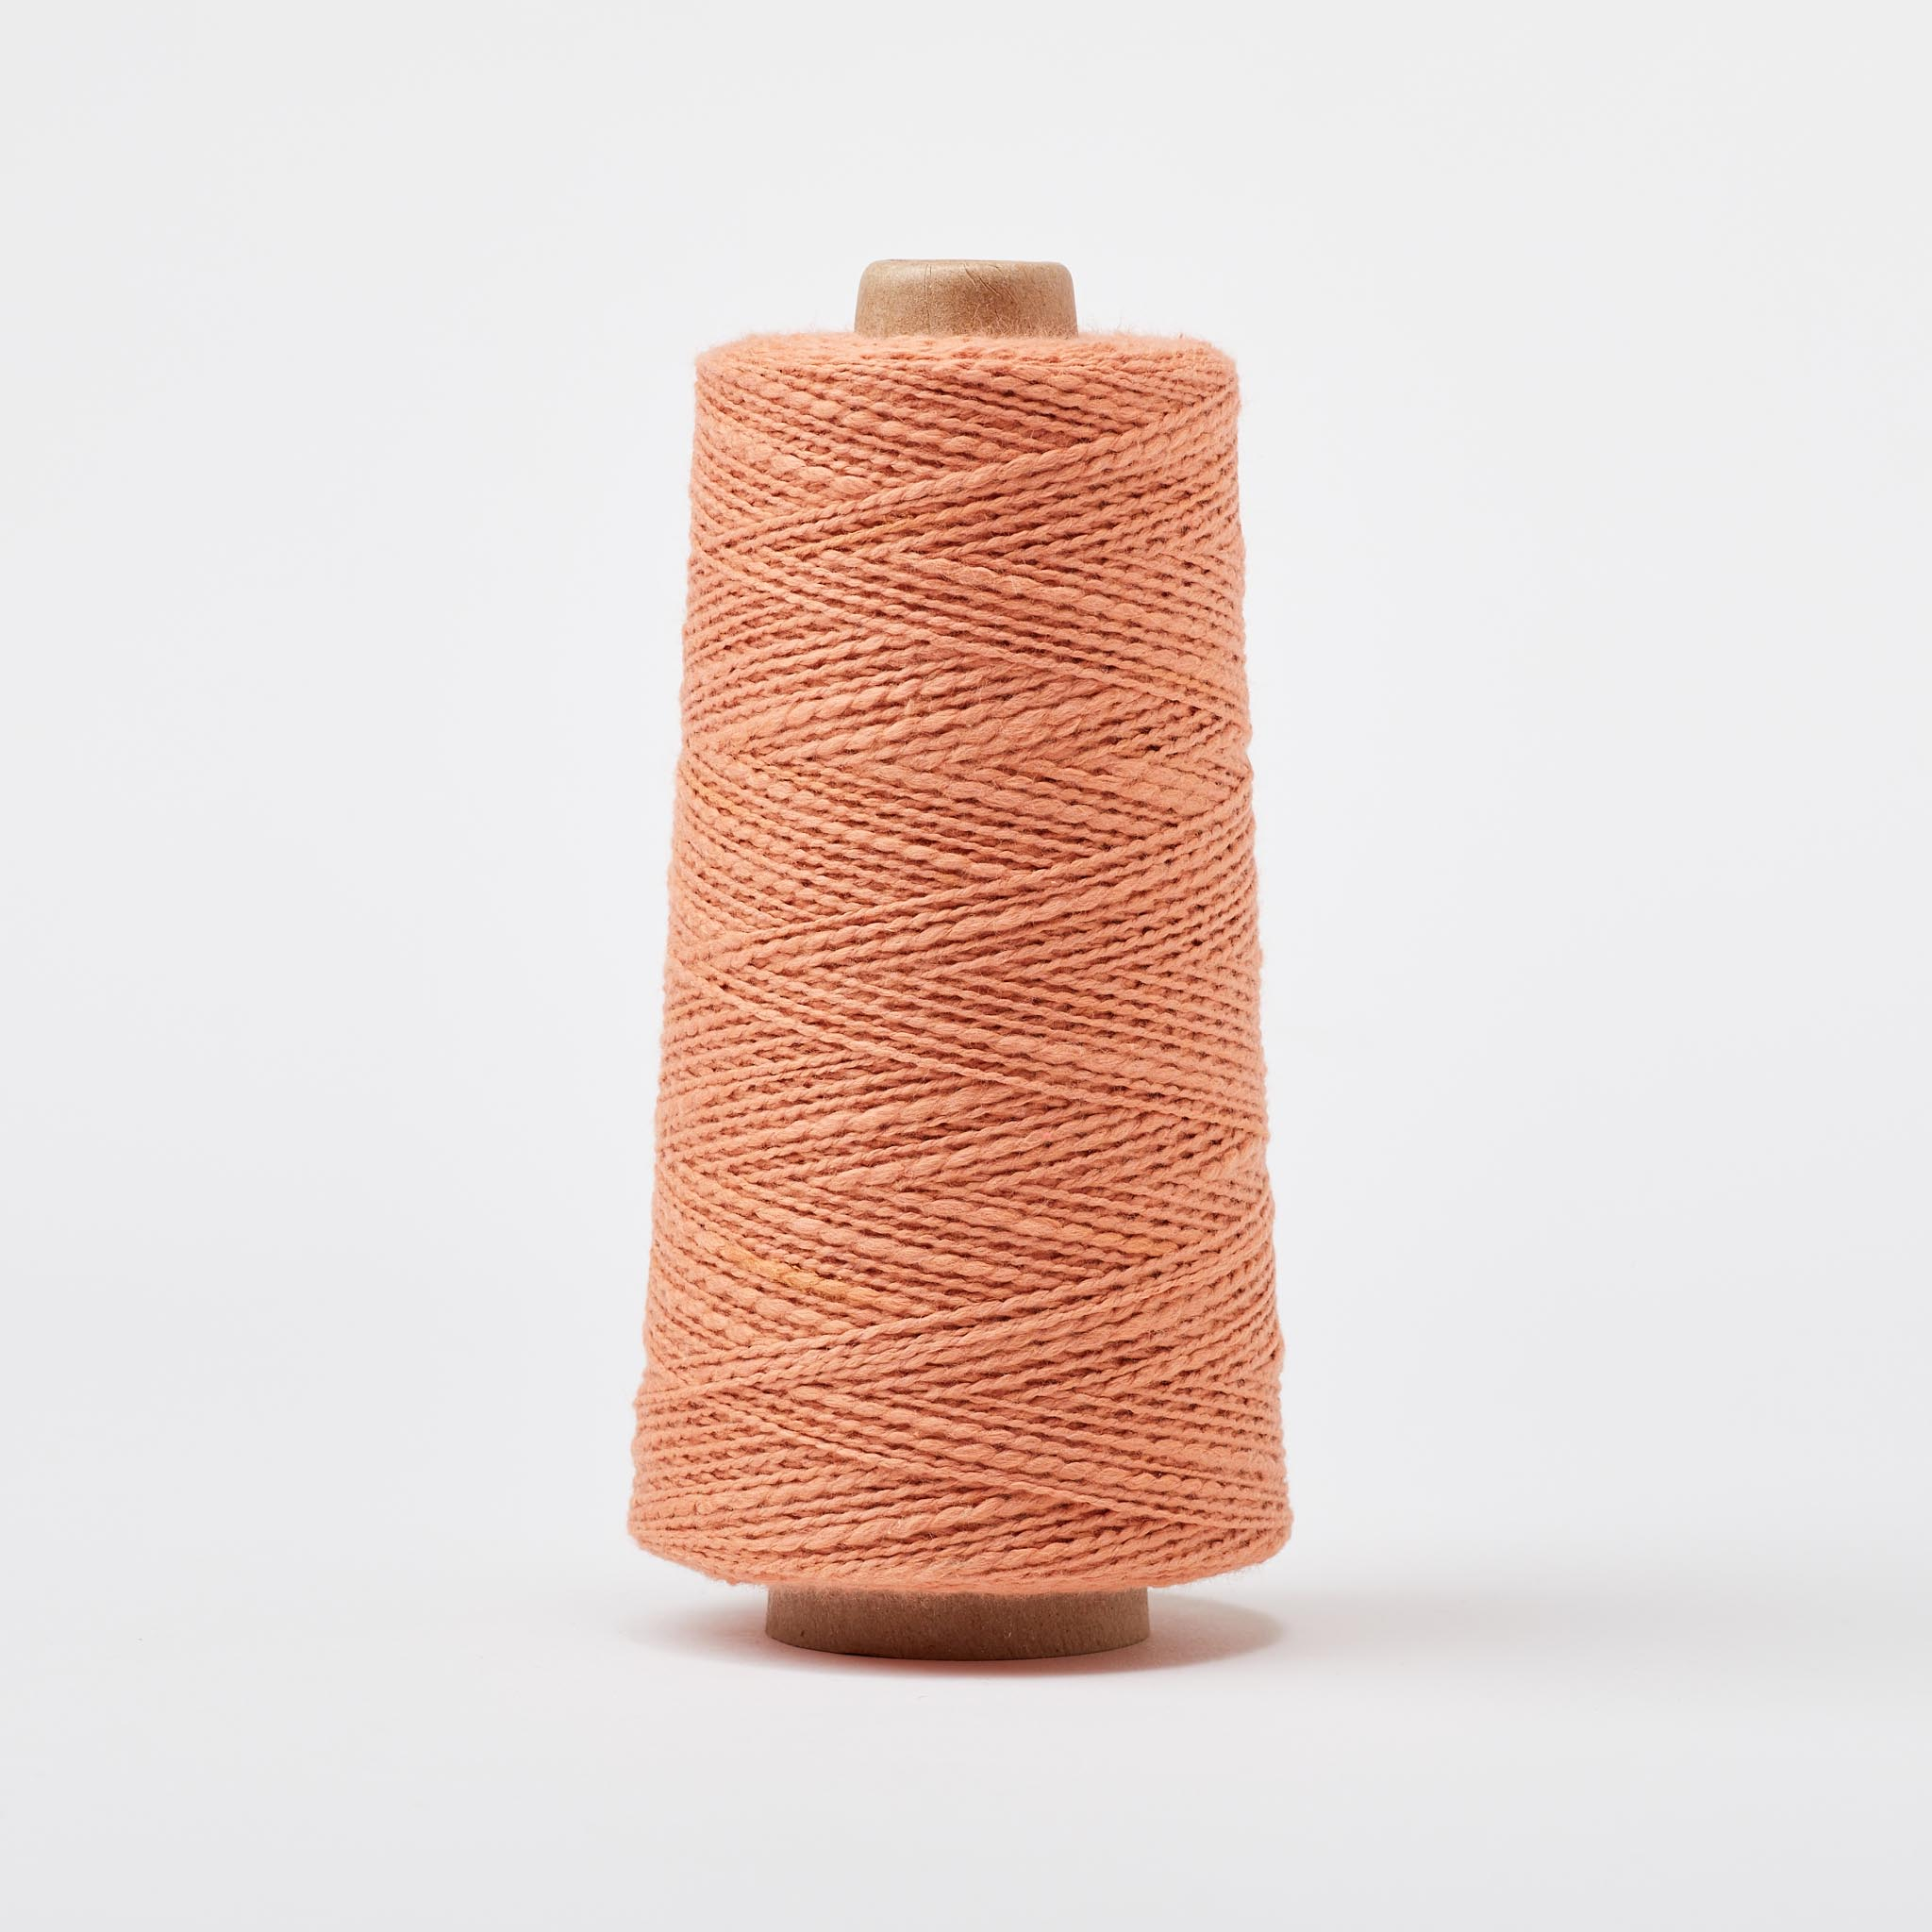 Mallo Cotton Slub Weaving Yarn Spice